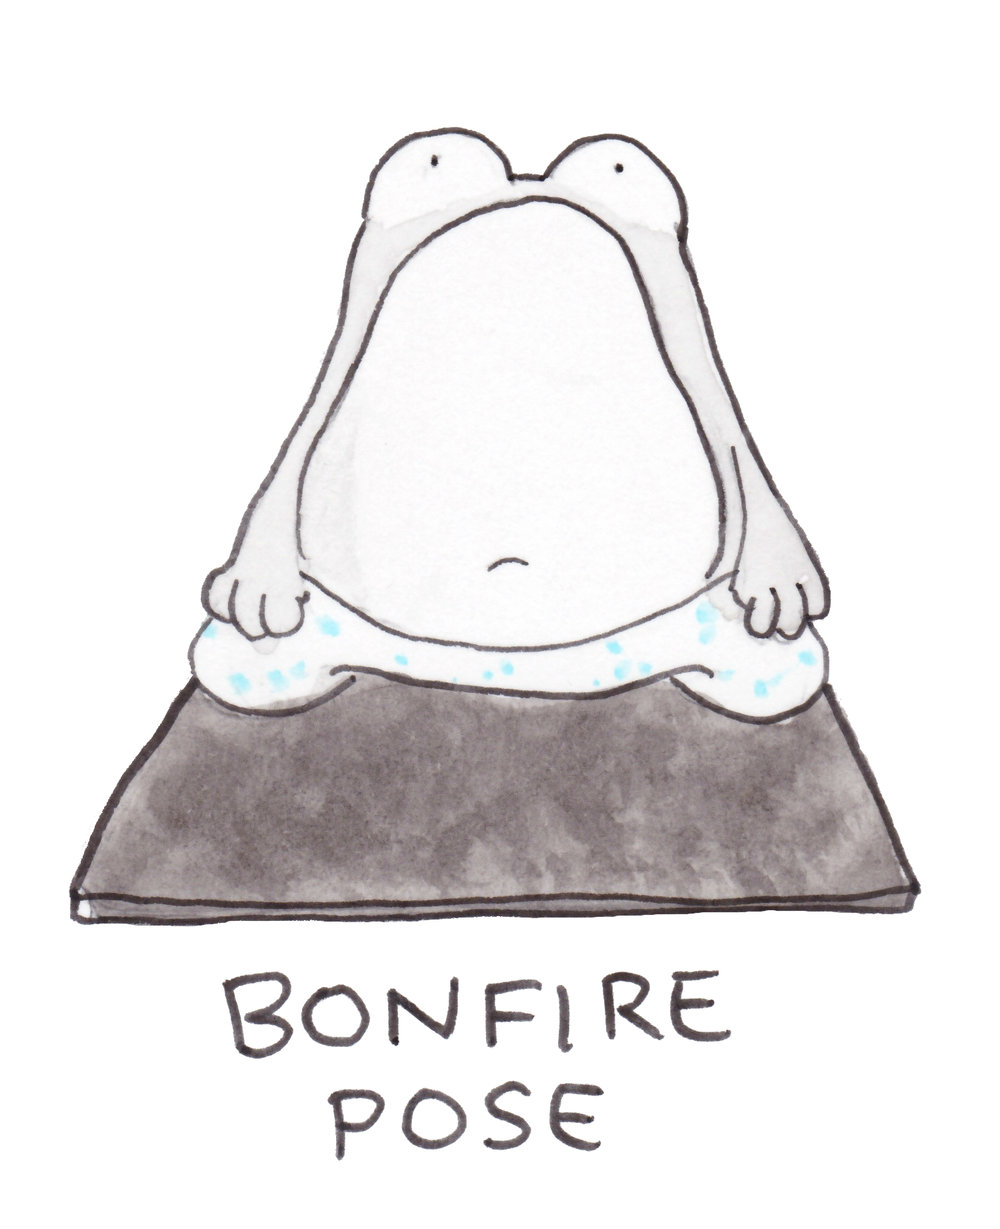 1-Bonfire Pose 1.jpg